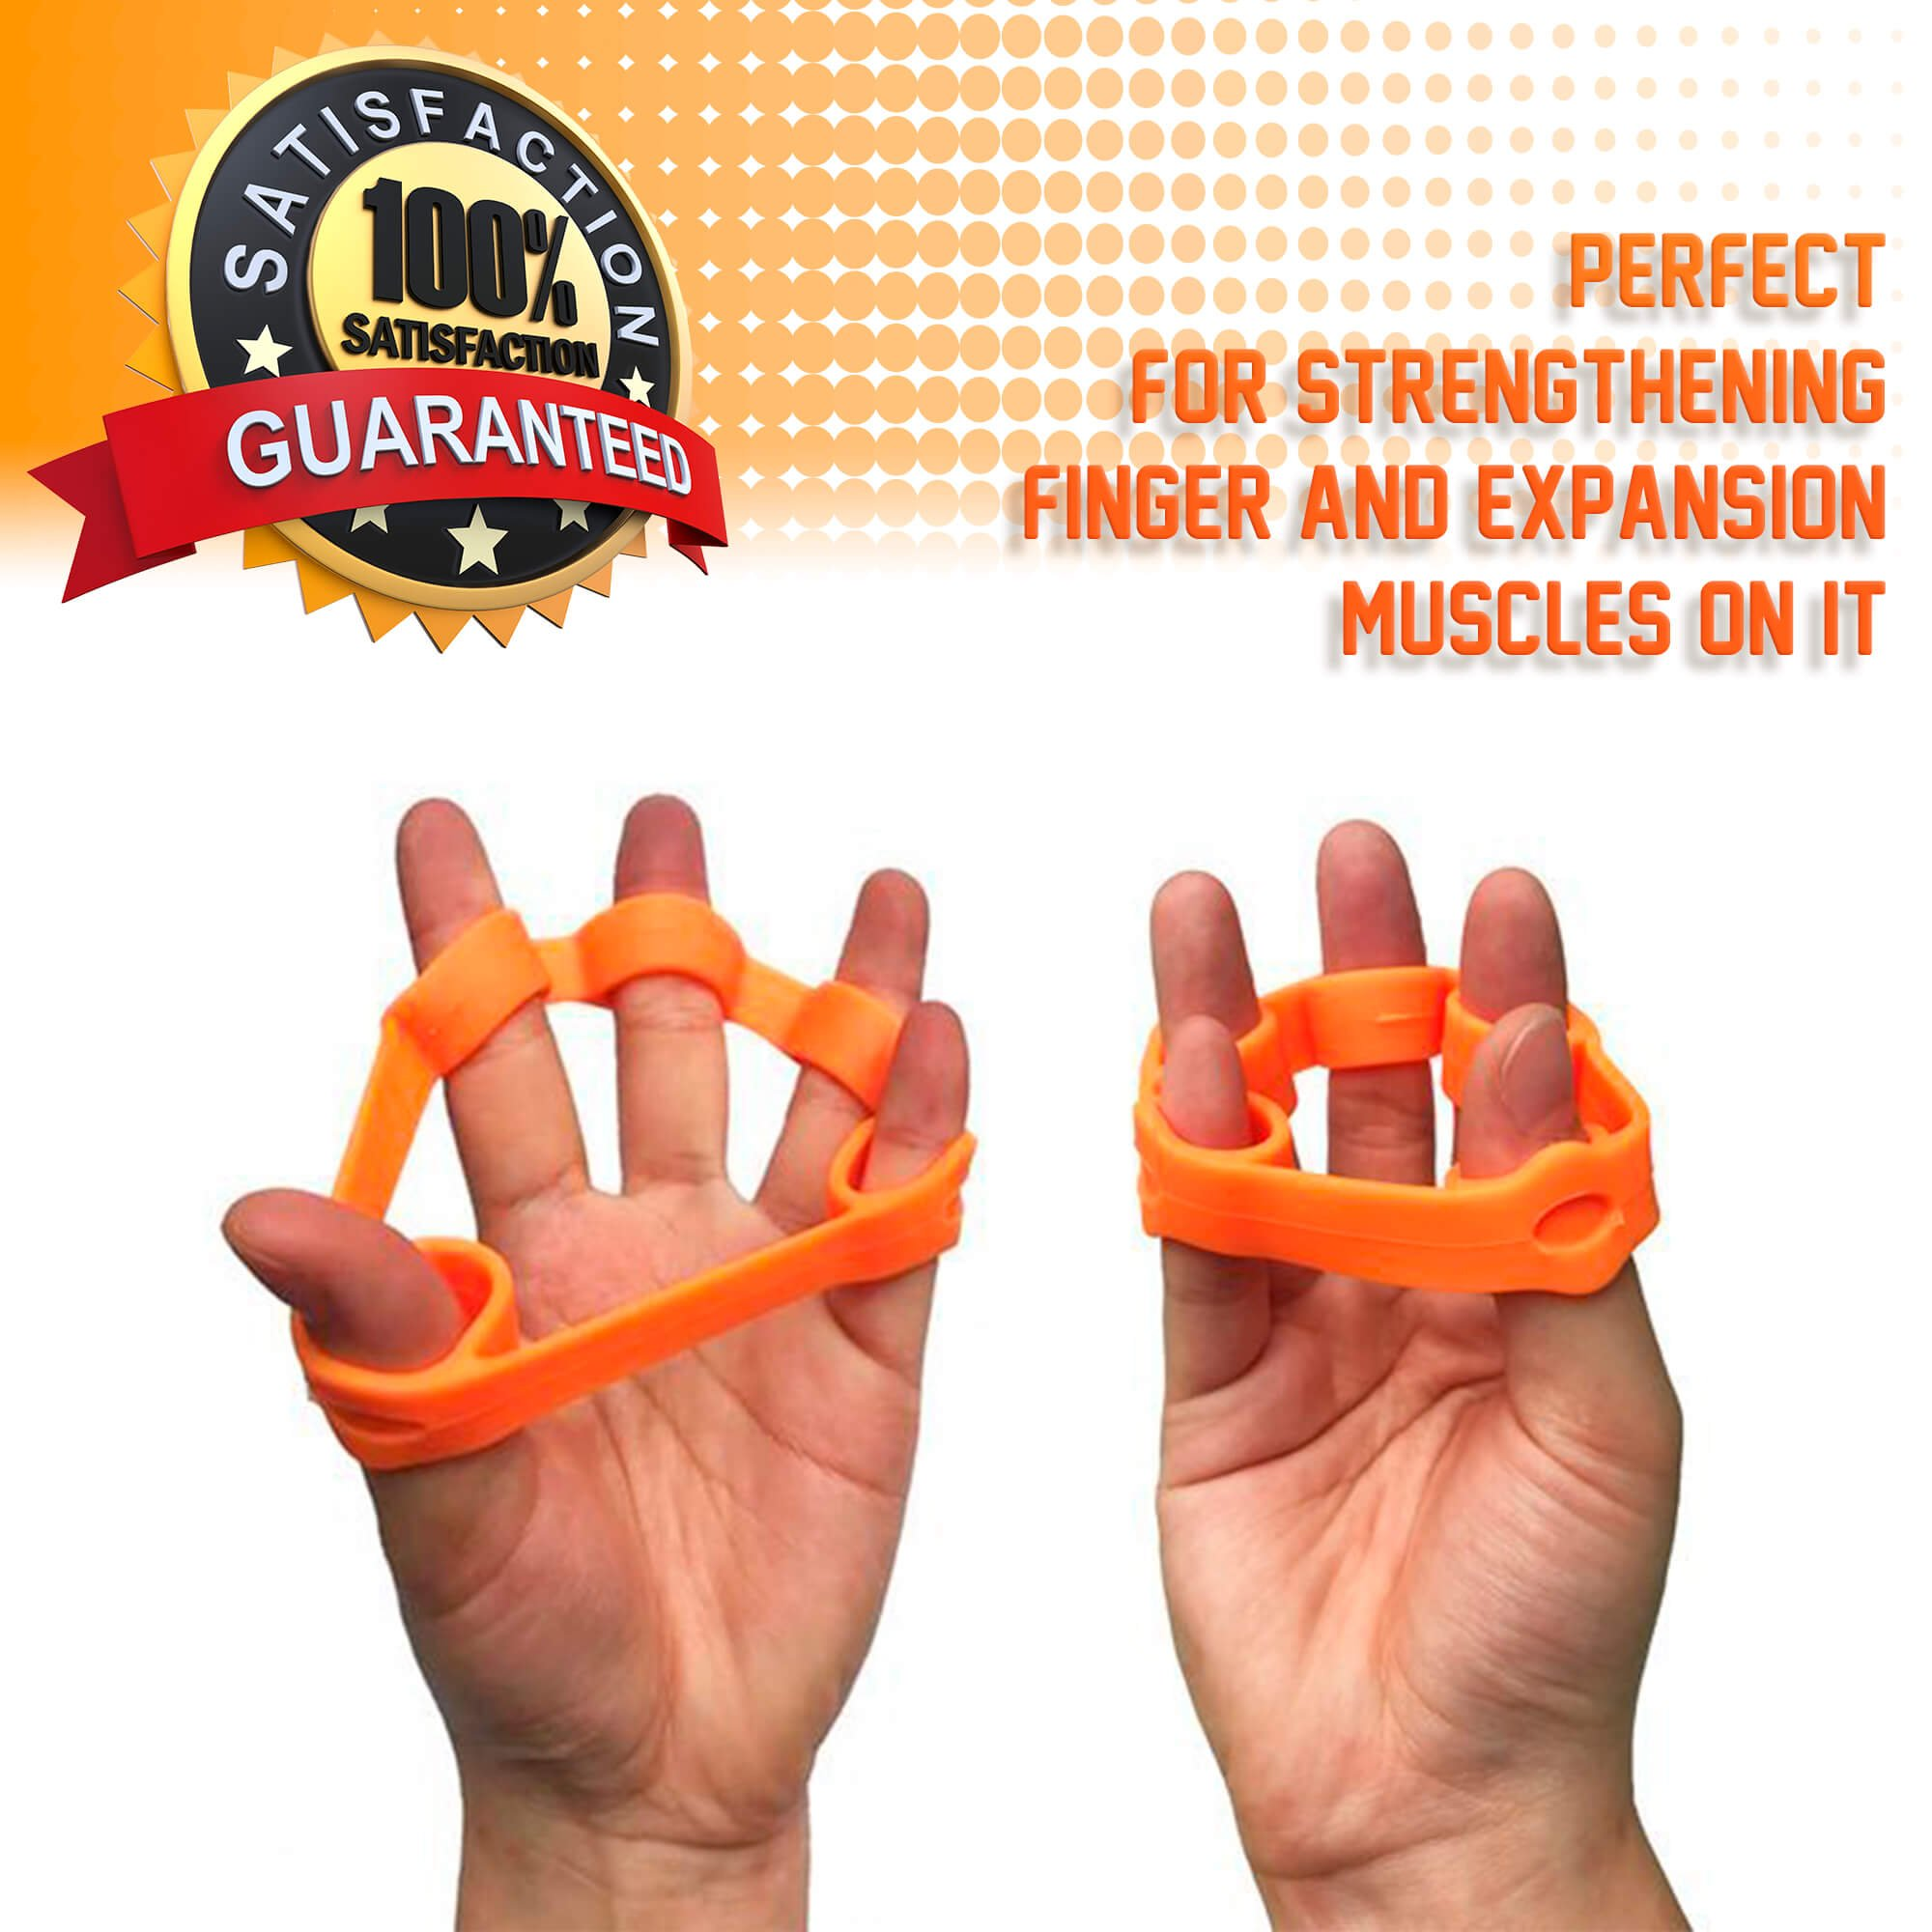 LIVV FITNESS Premium Finger Stretcher and Grip Strength Trainer Kit - Strengthens Fingers, Forearm, Wrist and Grip - 3 Level Finger Resistance Bands and Hand Grip Workout Rings with Carry Bag (6 Pack) by LIVV FITNESS